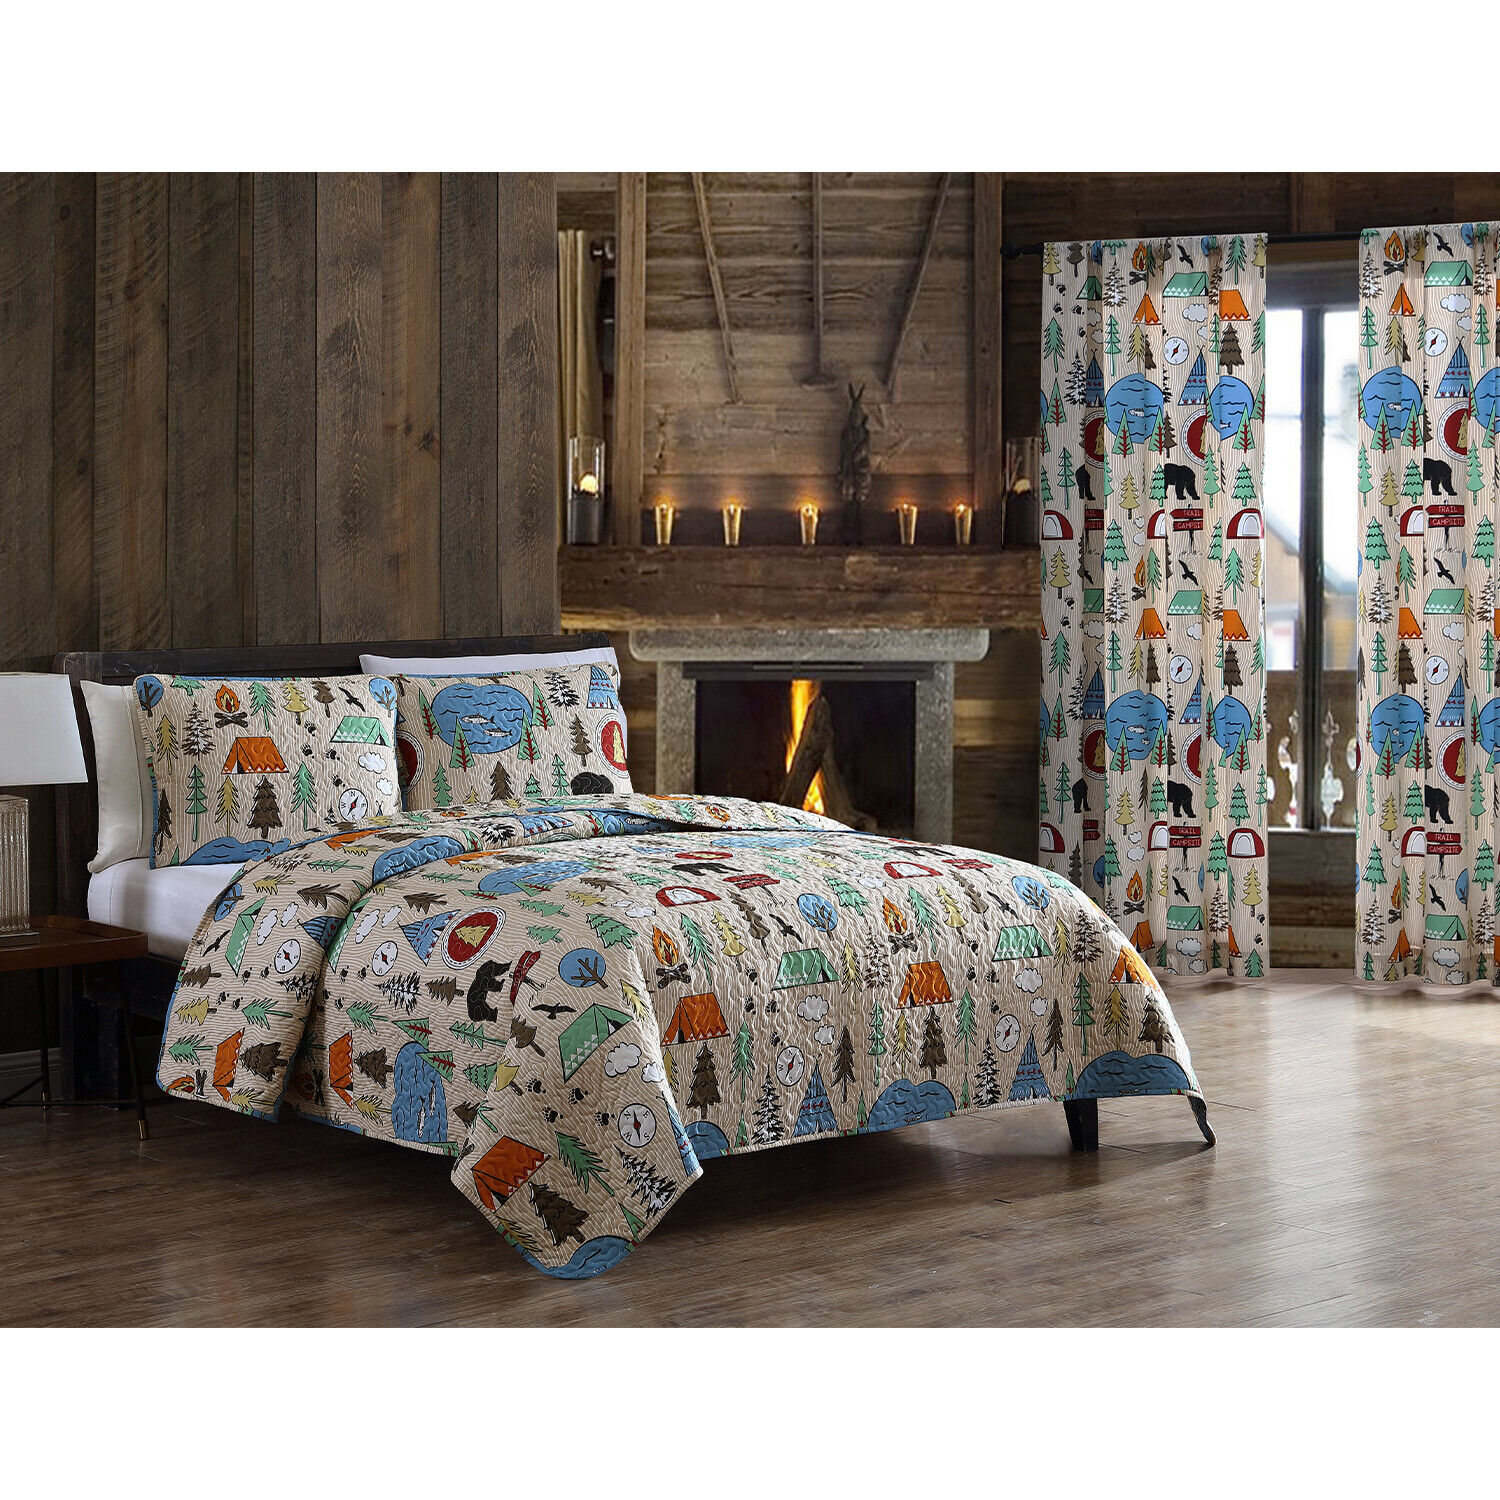 Twin, Full/Queen or King Camping Quilt Set or Curtains Tents Lakes Bears, Tan Bedding